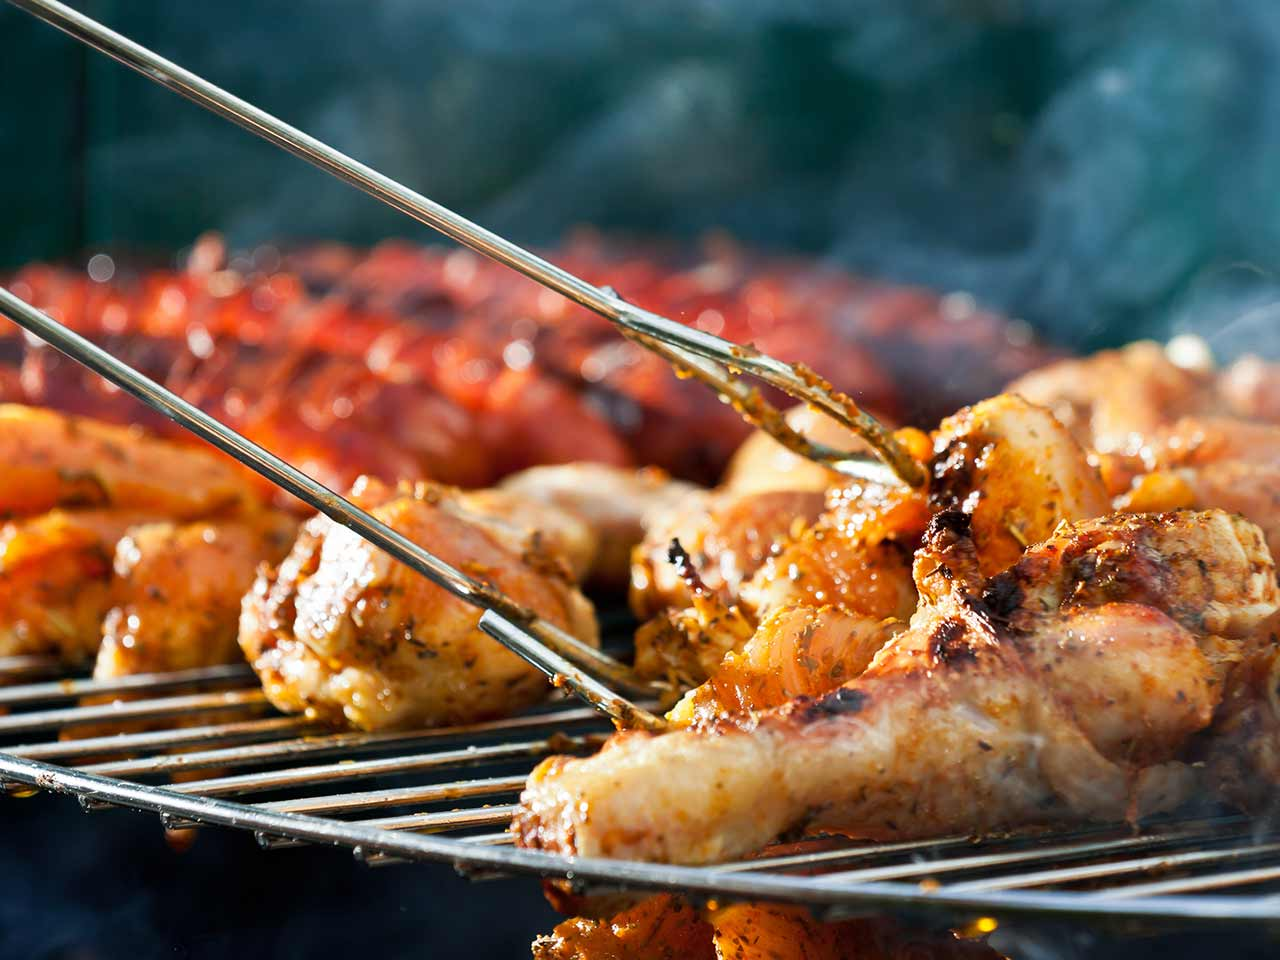 Chicken on a barbecue